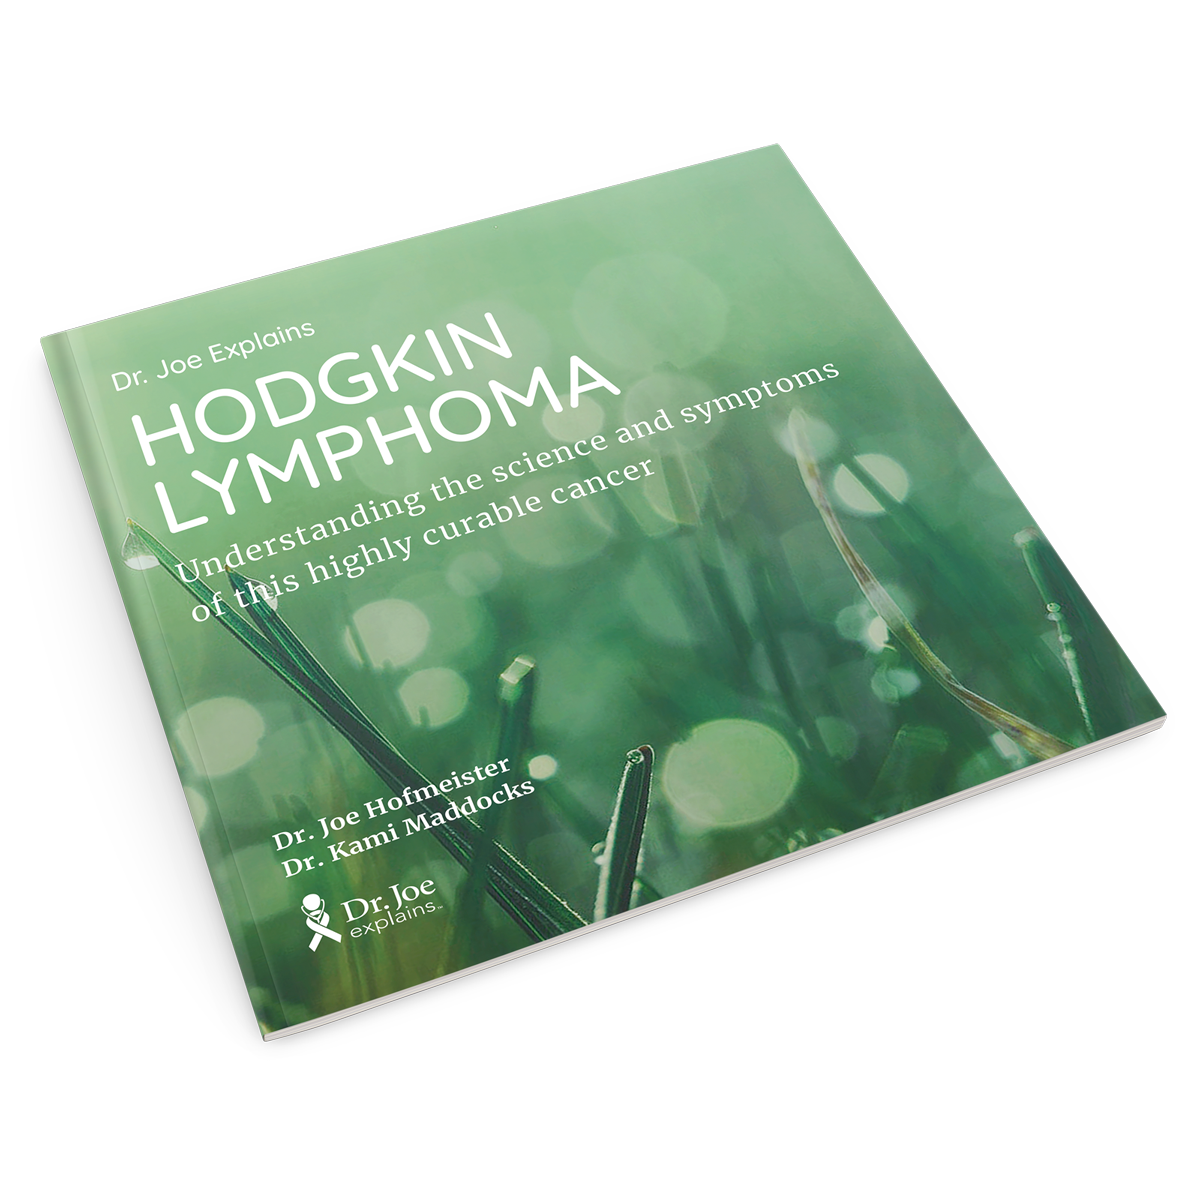 Hodgkin lymphoma diagnosis book